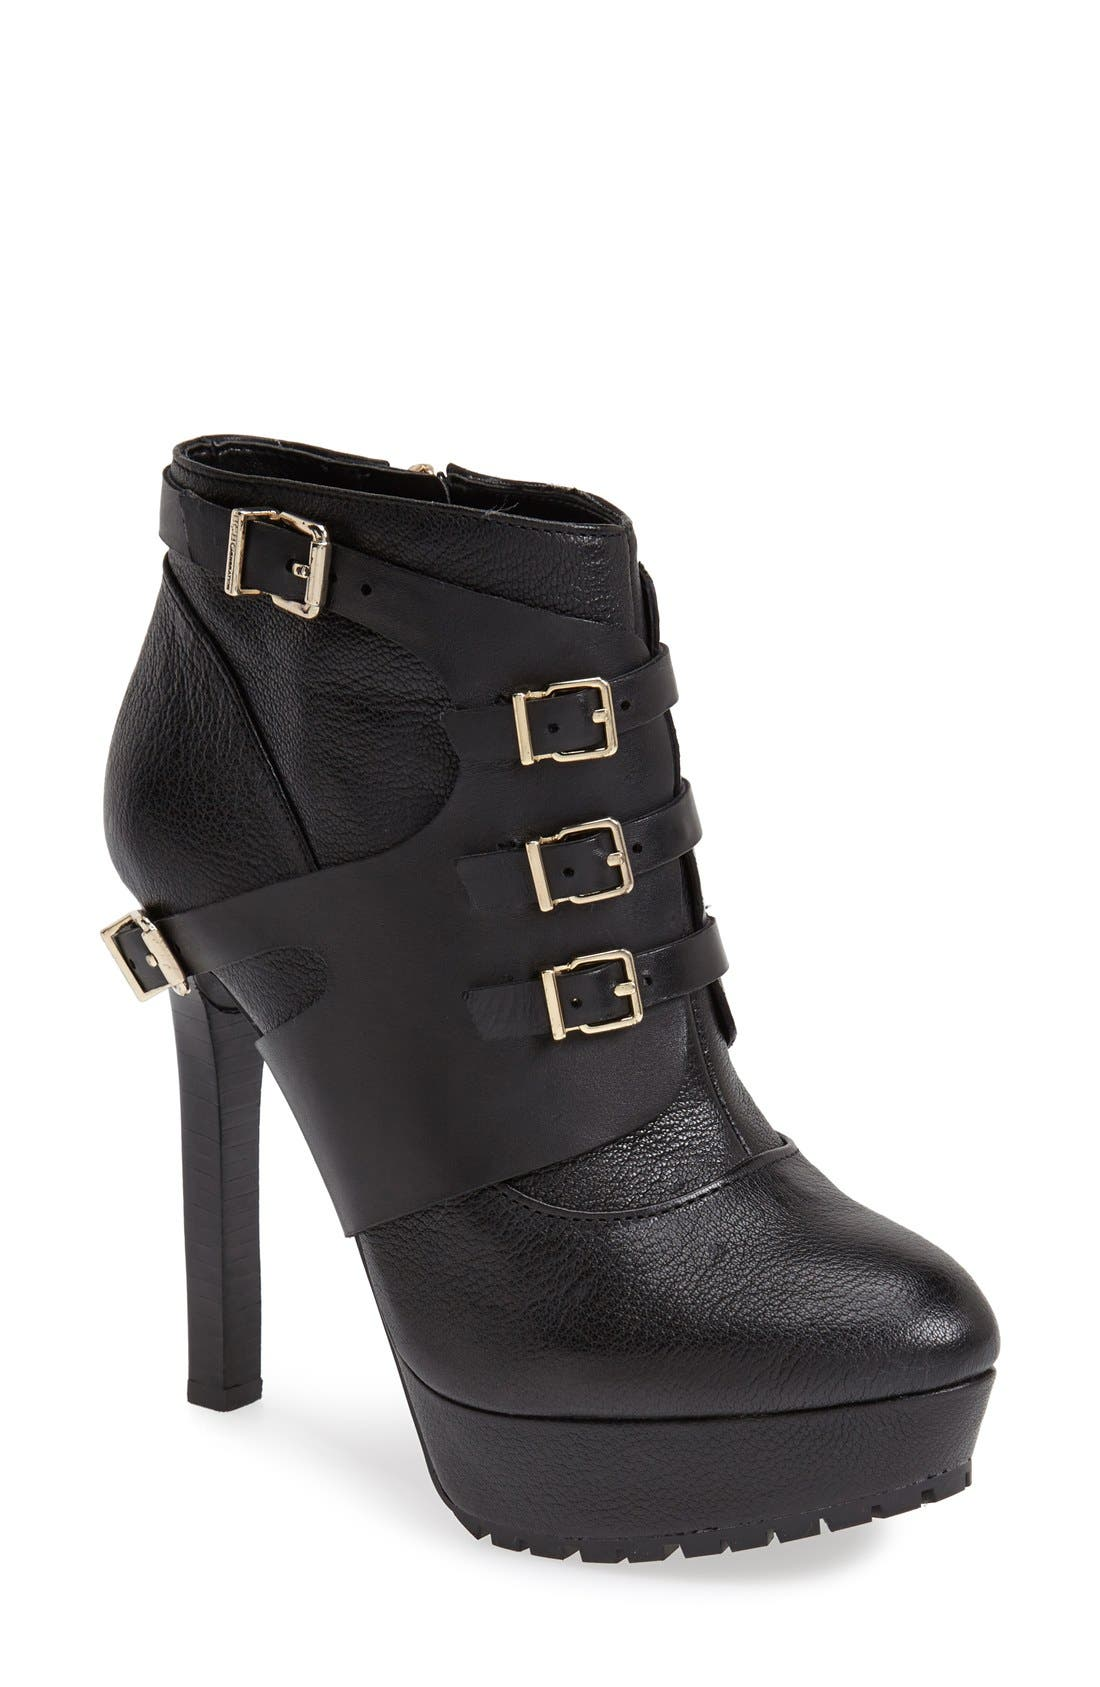 Alternate Image 1 Selected - BCBGeneration 'Welsh' Platform Bootie (Women)